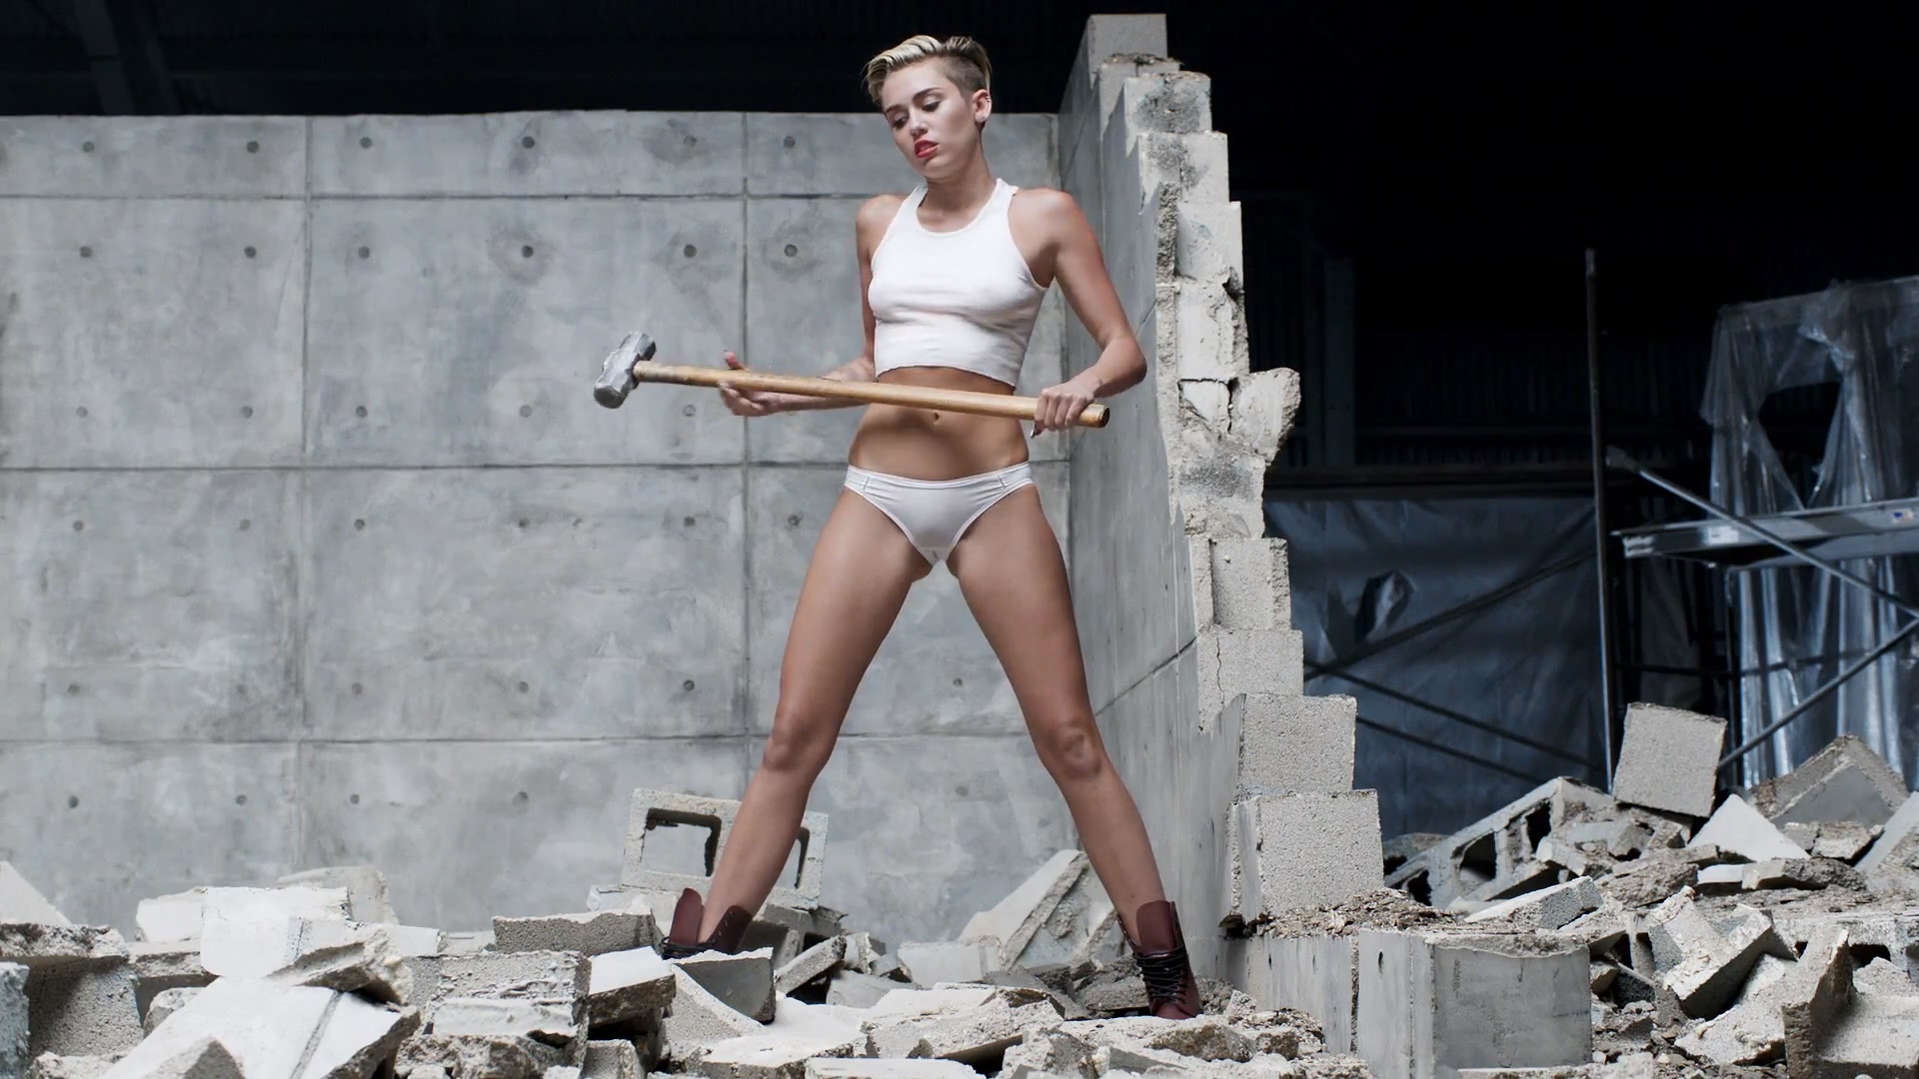 Miley Cyrus Wrecking Ball Video Stills Full Size